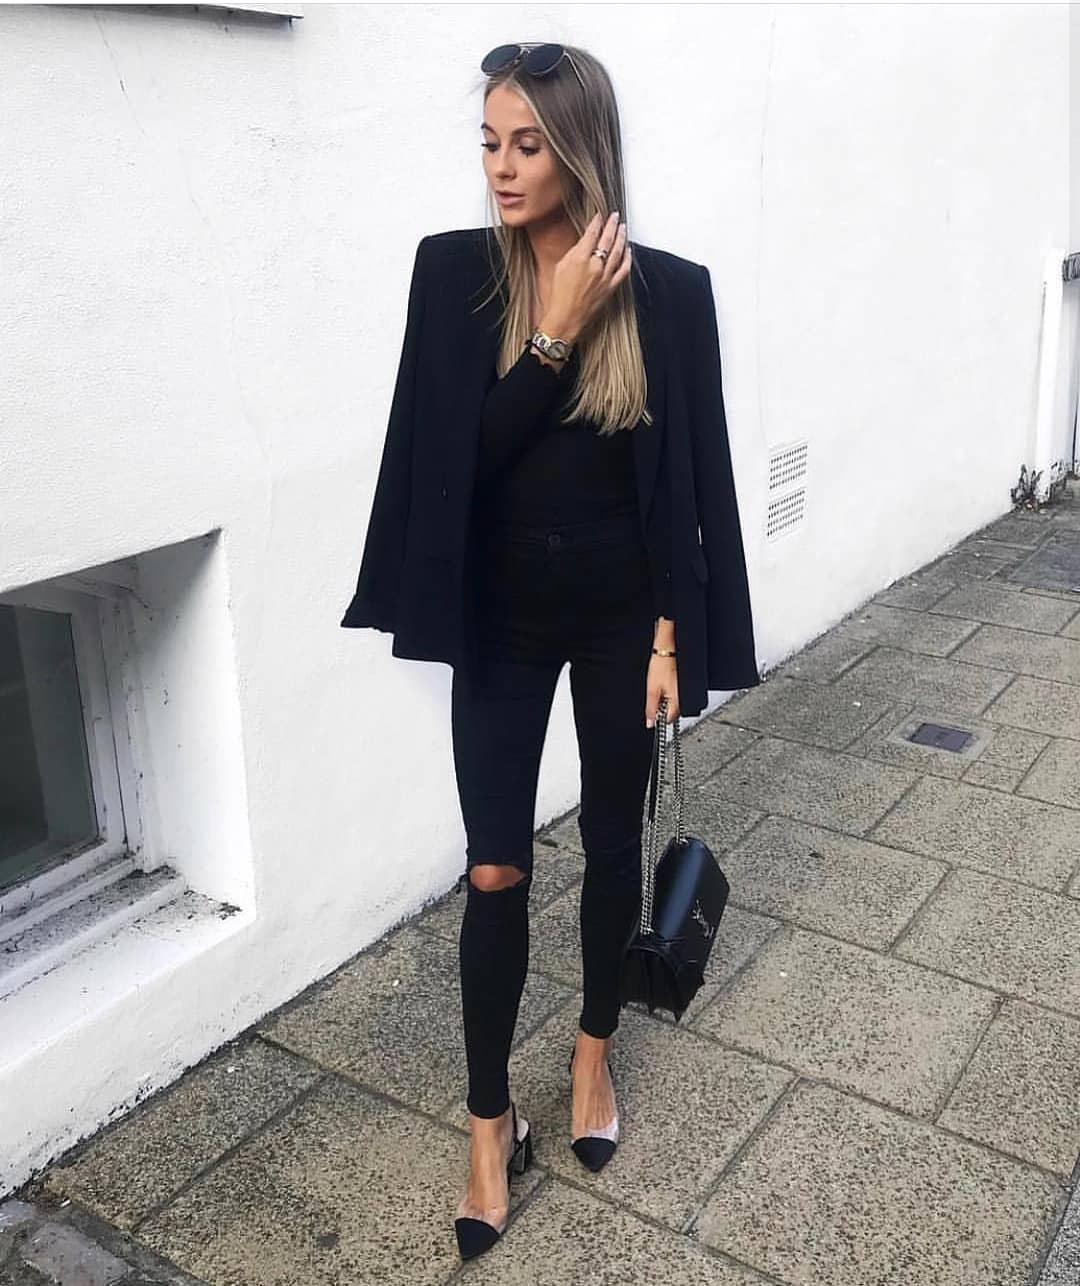 Black Blazer With Black Skinny Jeans: All In Black Outfit Idea For Spring 2020